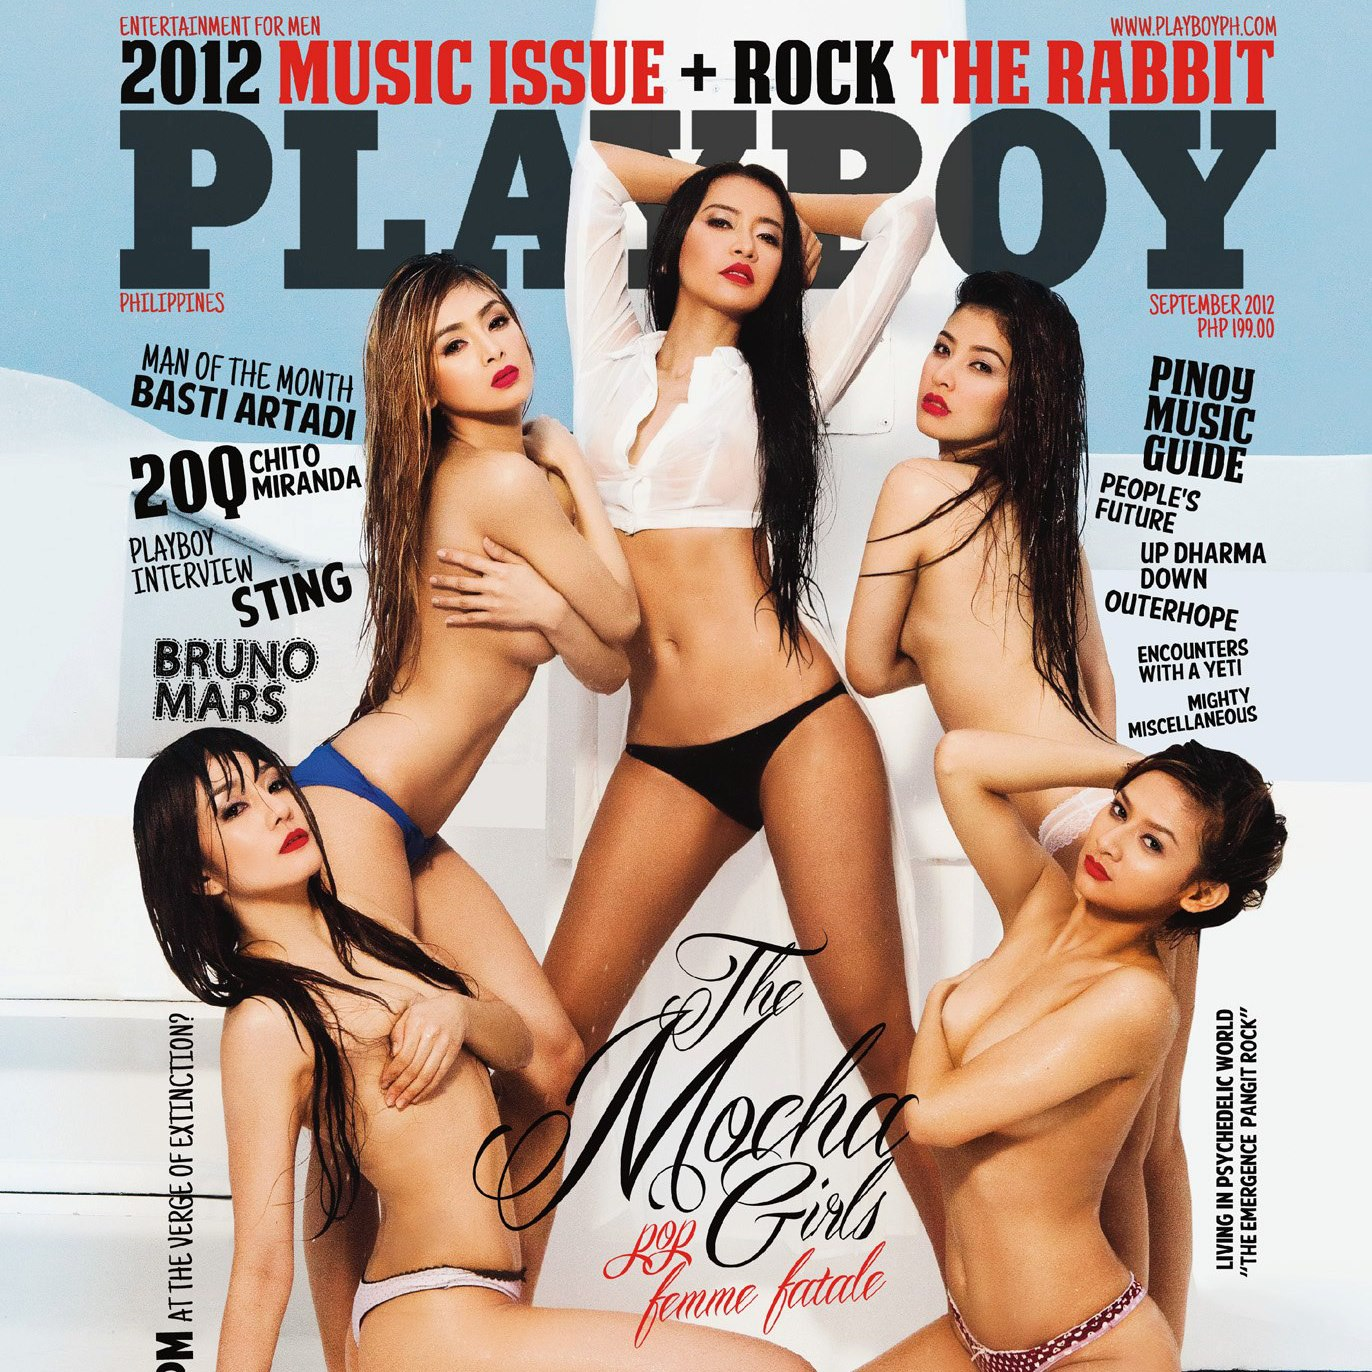 The Mocha Girls Cover Playboy Philippines Magazine September 2012 ...